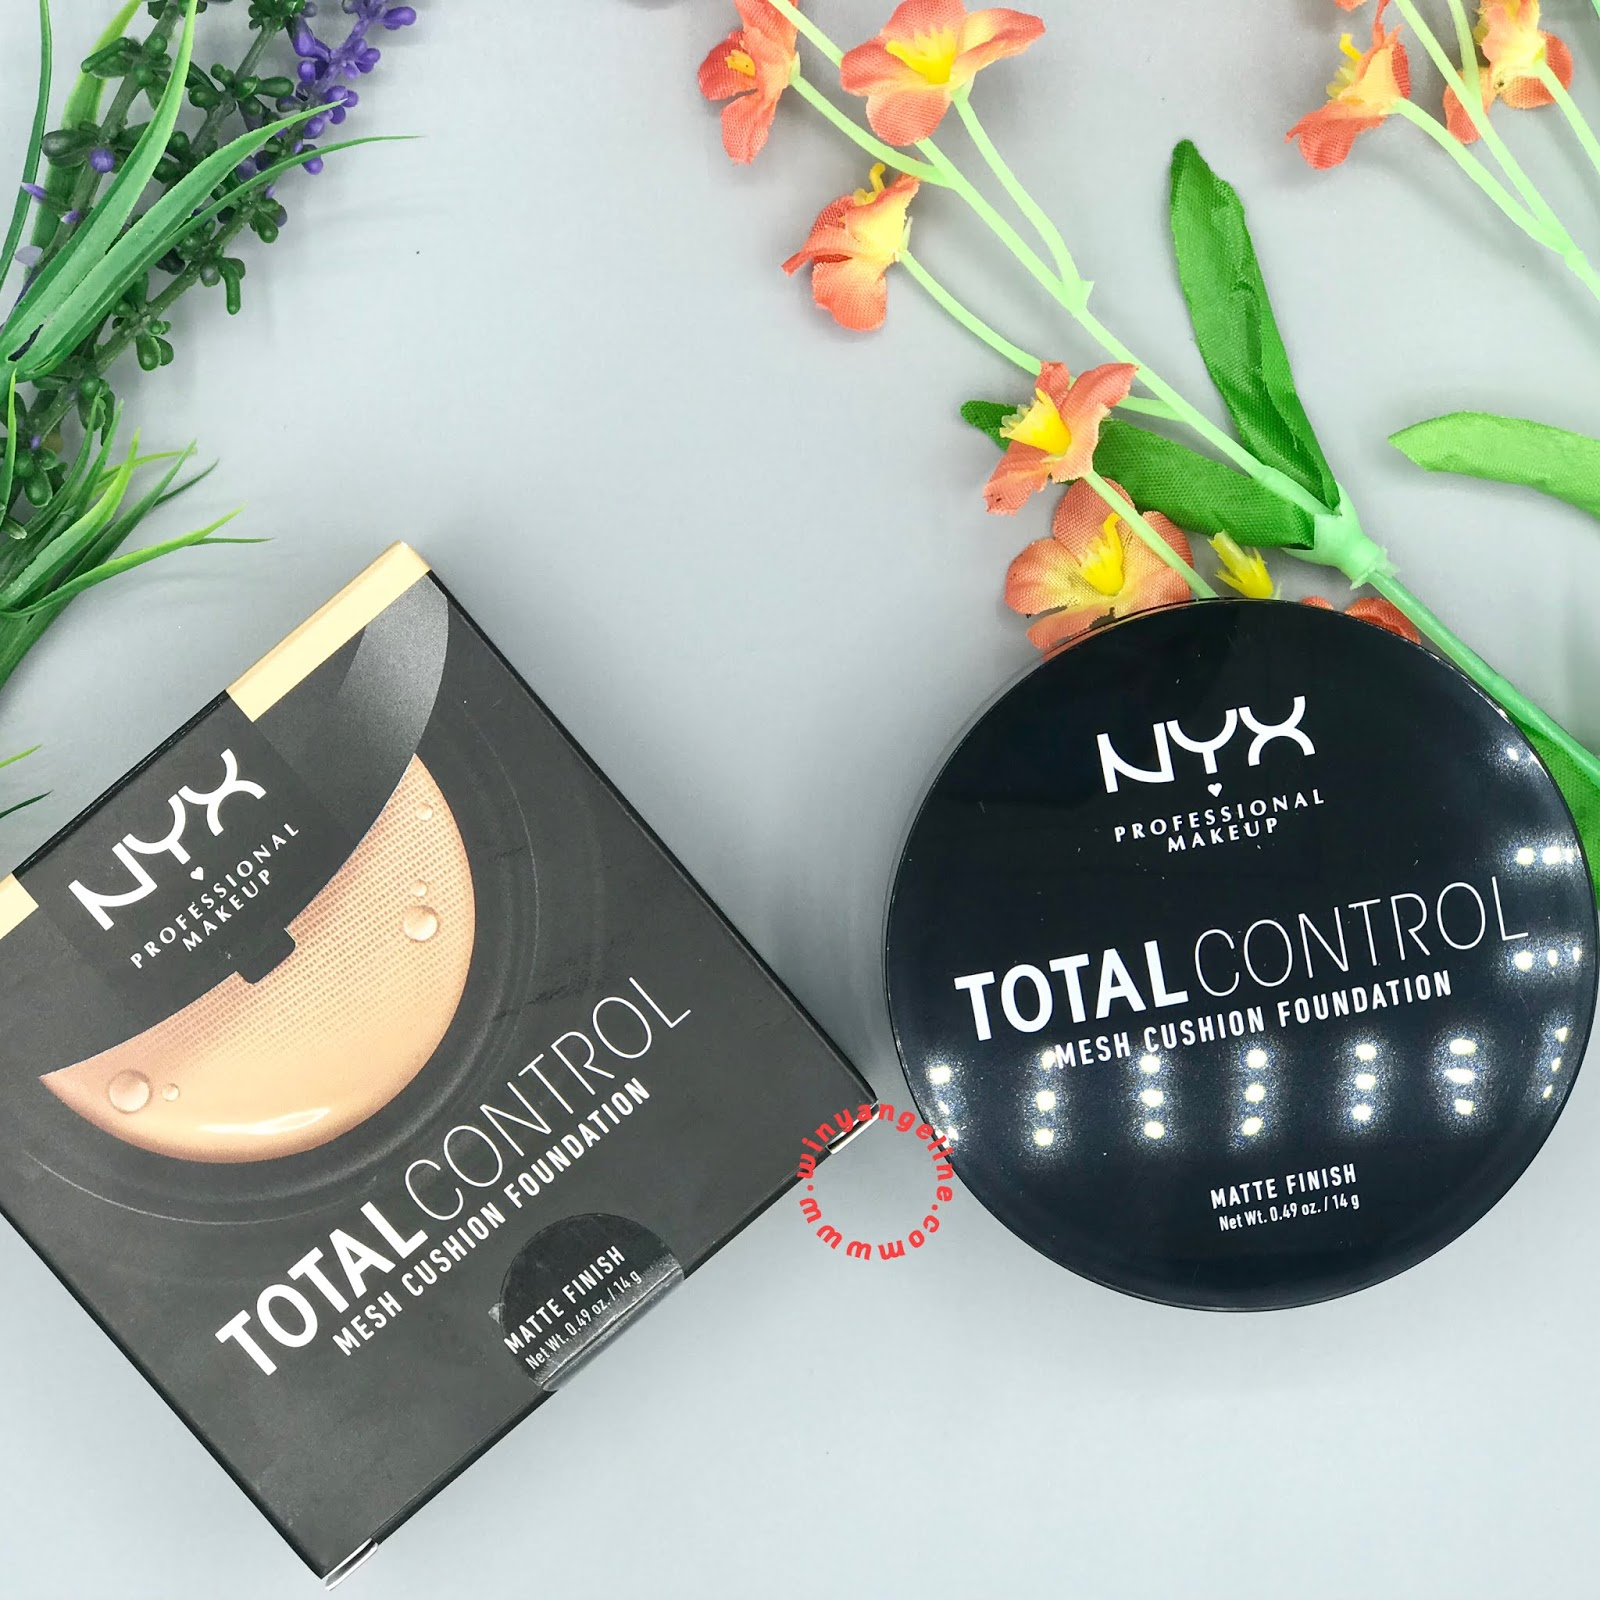 Nyx Total Control Mesh Cushion Foundation Review